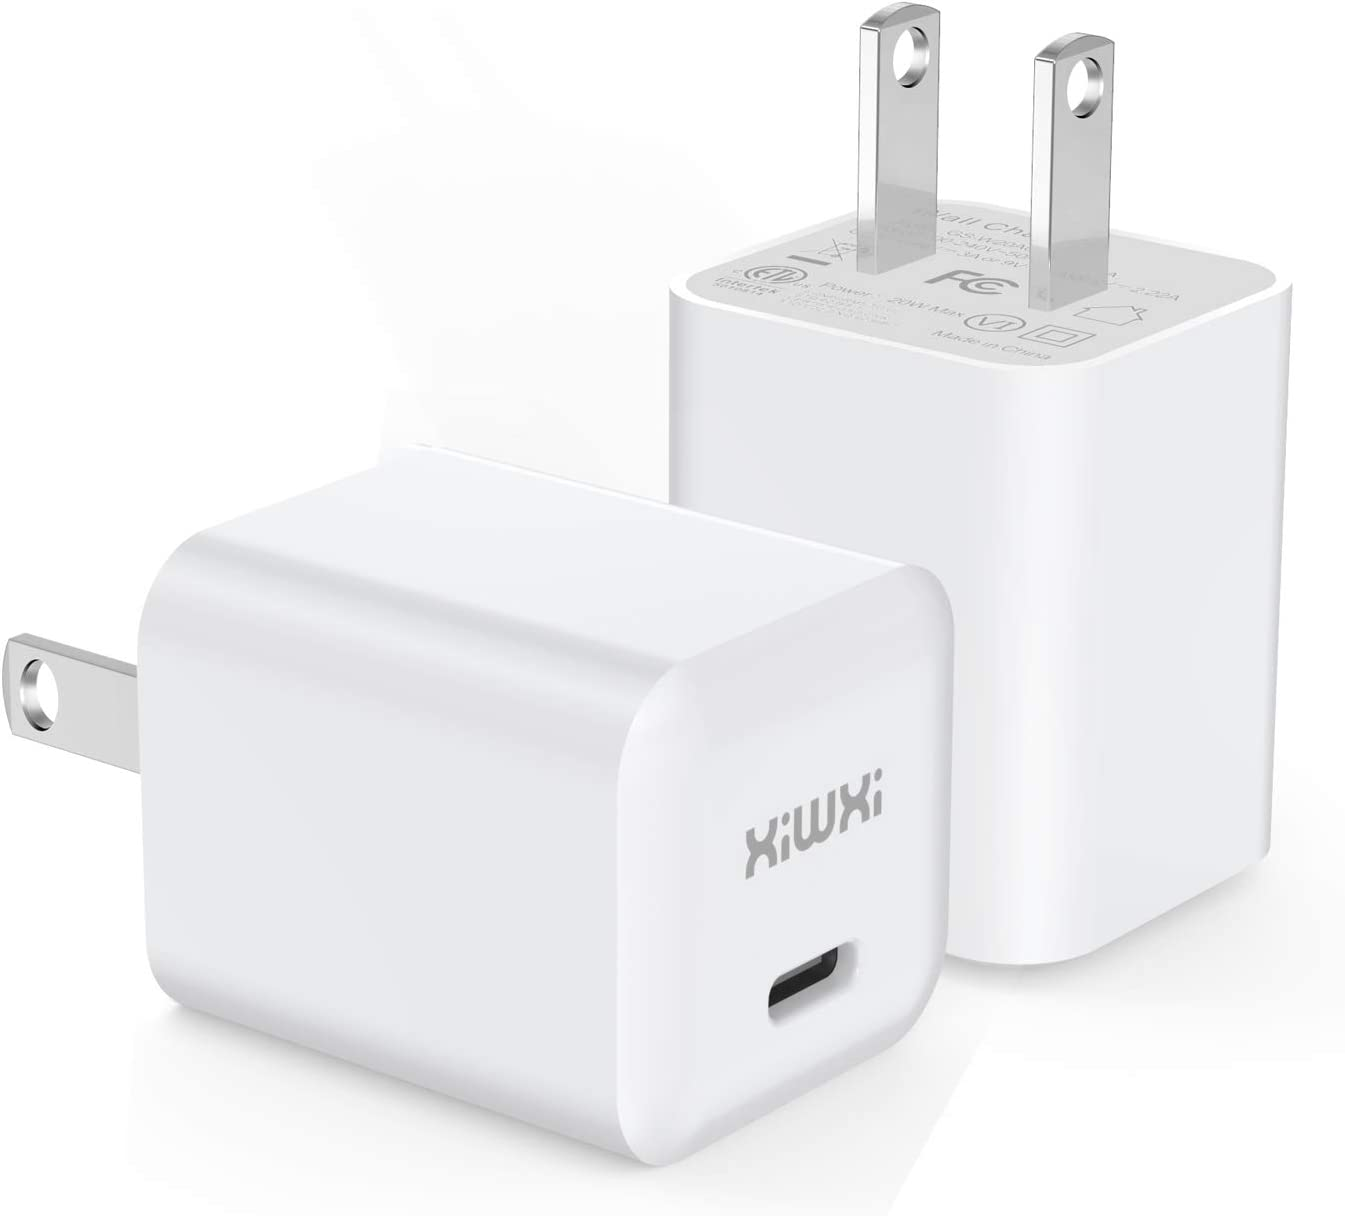 xiwxi USB C Power Adapter, 20W Fast PD Phone Charger Wall Charger Compatible with iPhone 12/12 Mini / 12 Pro / 12 Pro Max / 11, Galaxy, Pixel, iPad Pro (2-Pack)